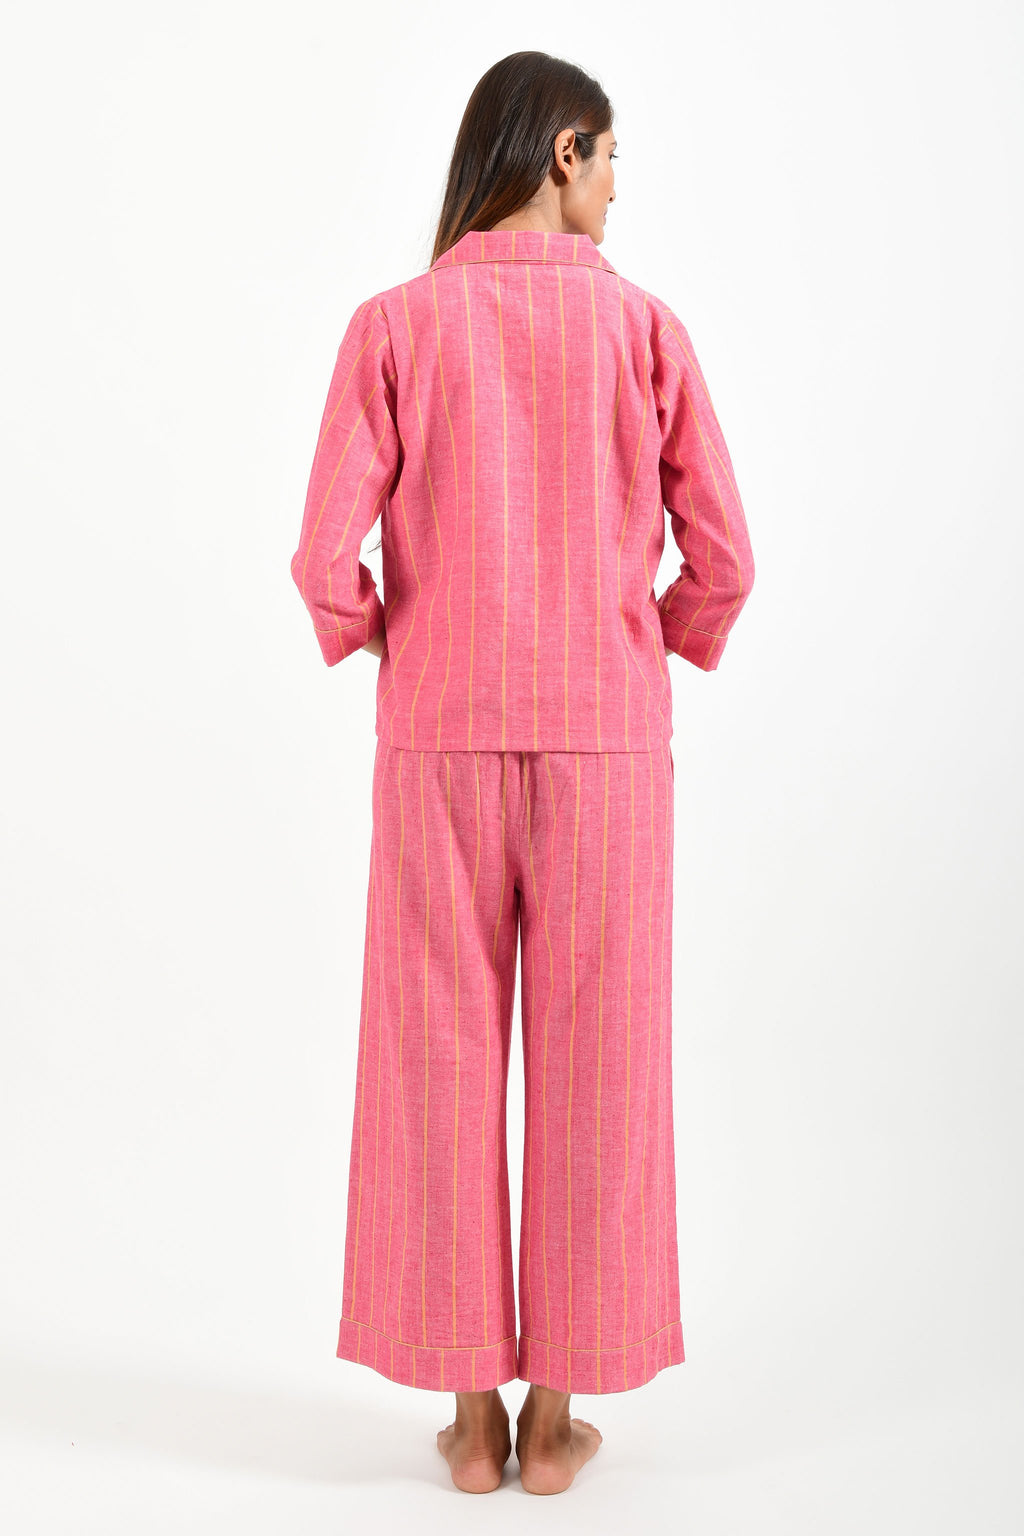 Back pose of an Indian female womenswear fashion model in azo-free dyed handspun and handwoven khadi cotton nightwear pyjama & shirt with red base and orange stripes by Cotton Rack.